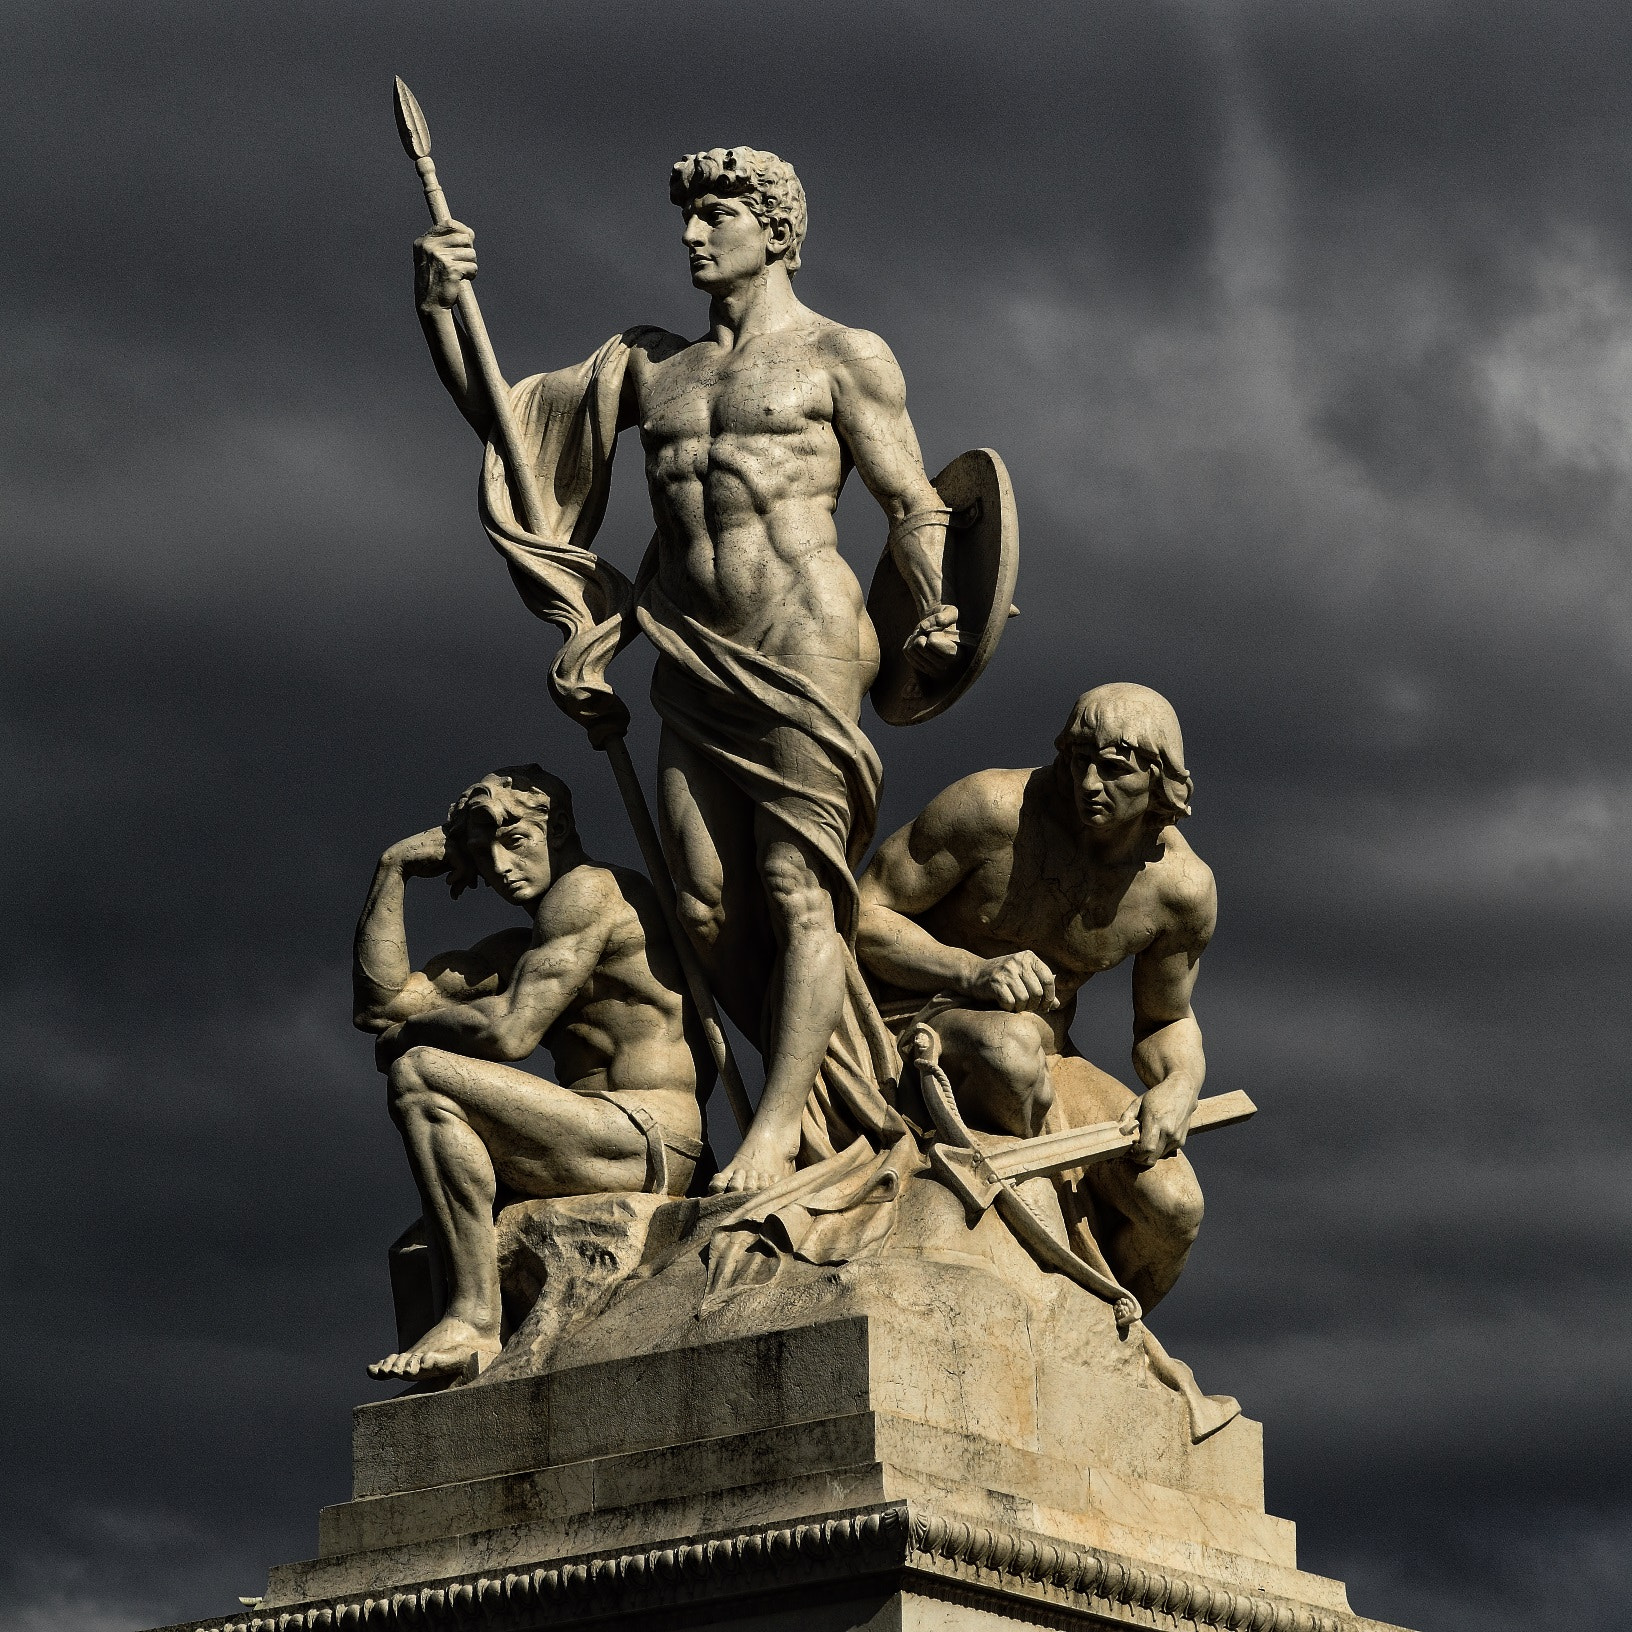 Photograph The Warriors and the Thinker (Vittoriano Statues) by Vincent Falardeau on 500px